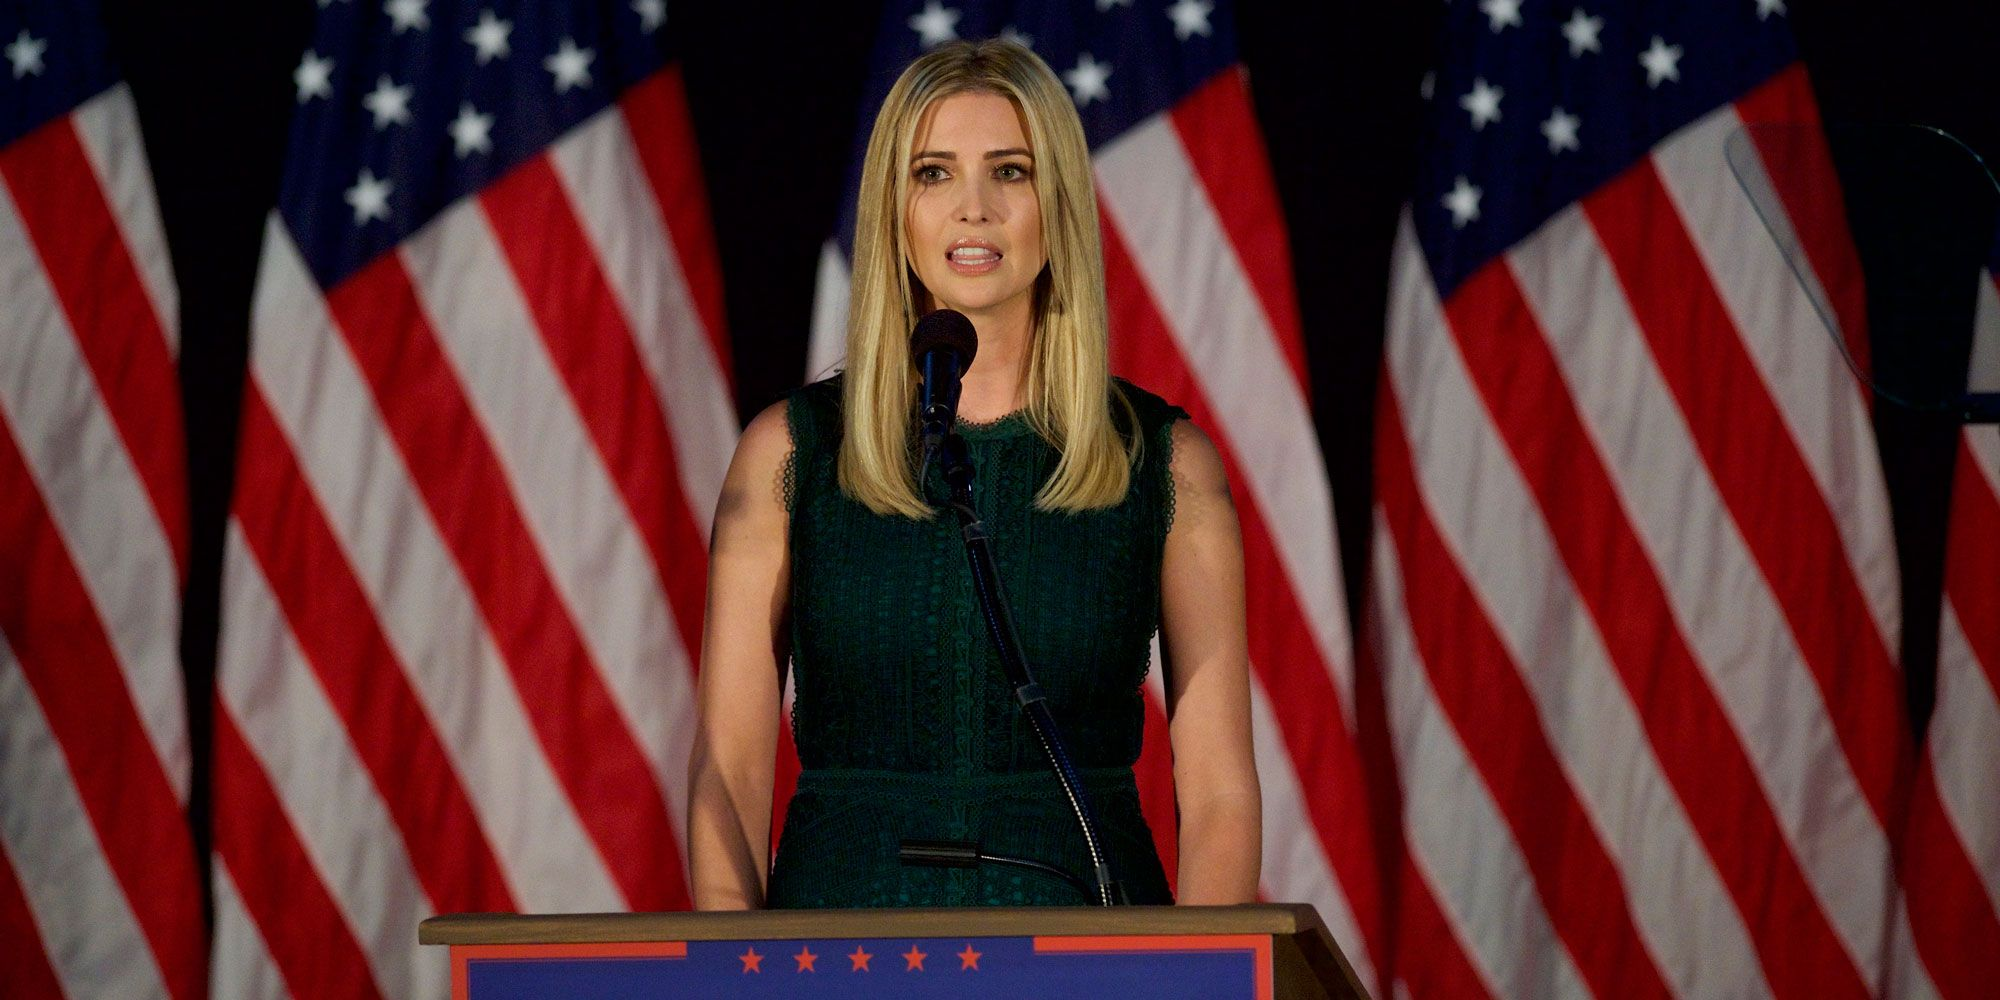 Ivanka Trump on Her Father's New Child Care and Maternity Leave Policy